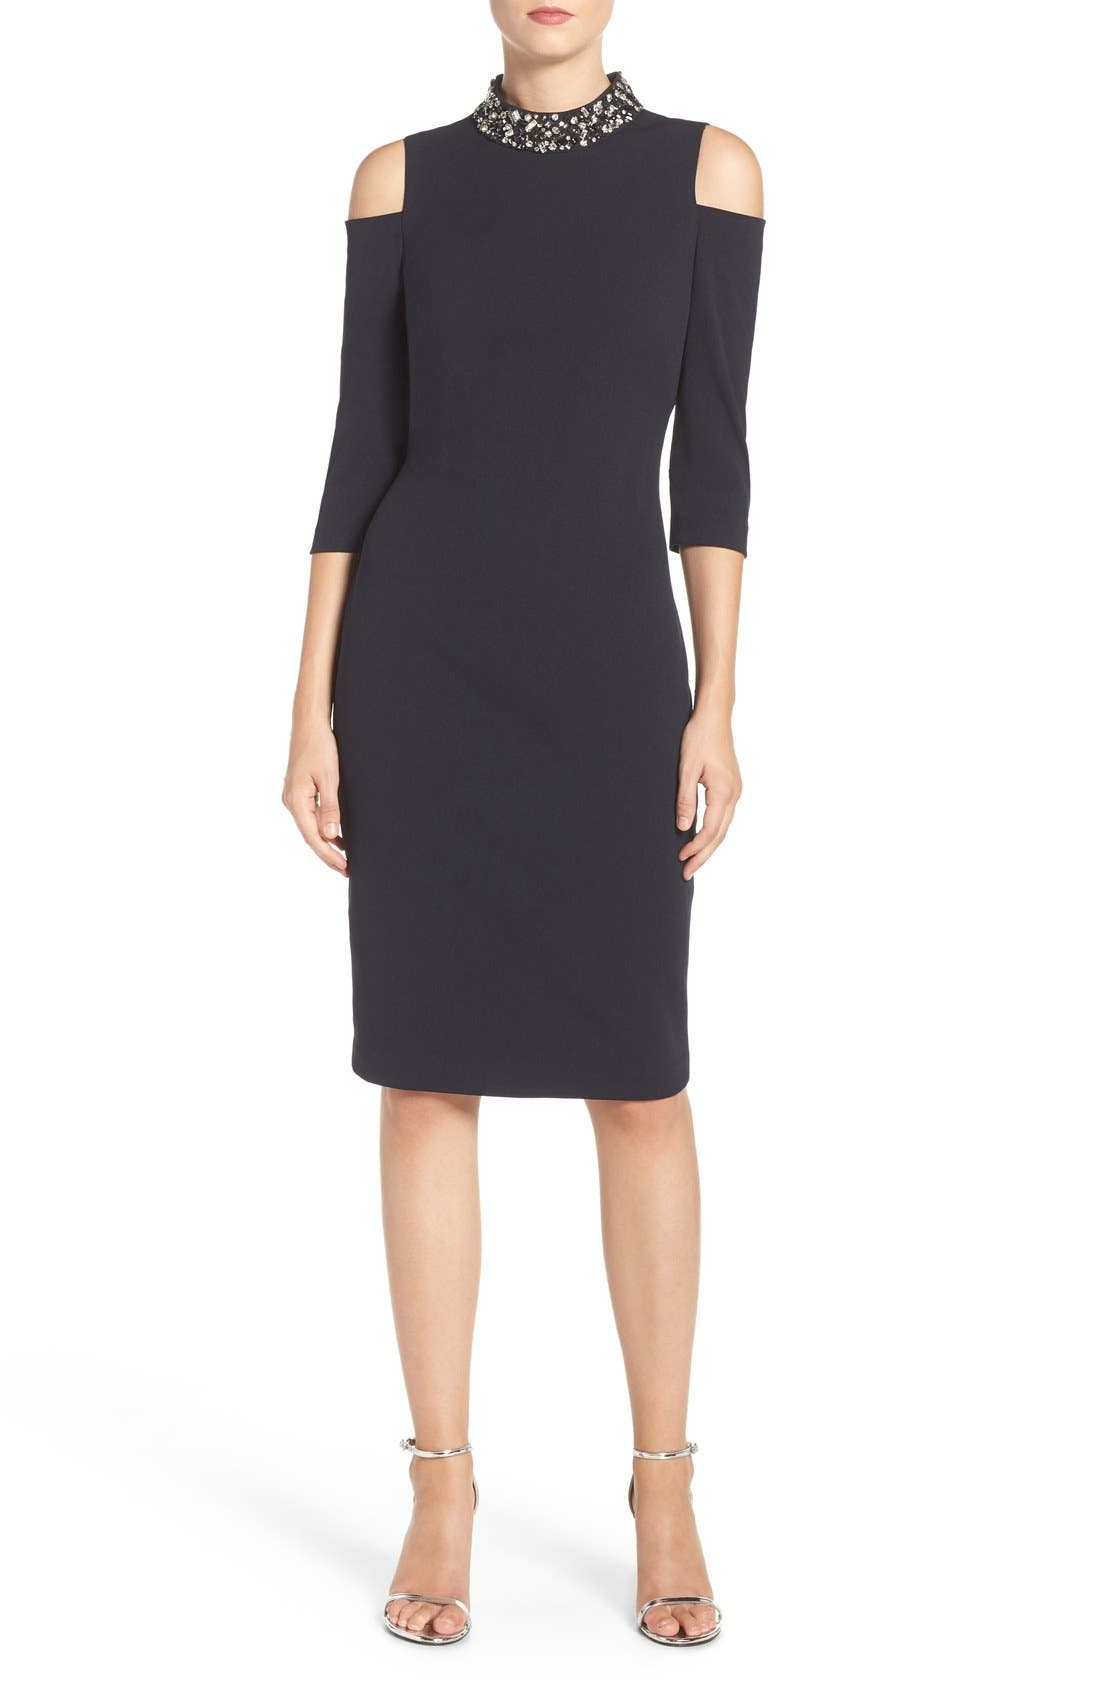 Alternate Image 1 Selected - Eliza J Embellished Stretch Sheath Dress (Regular & Petite)